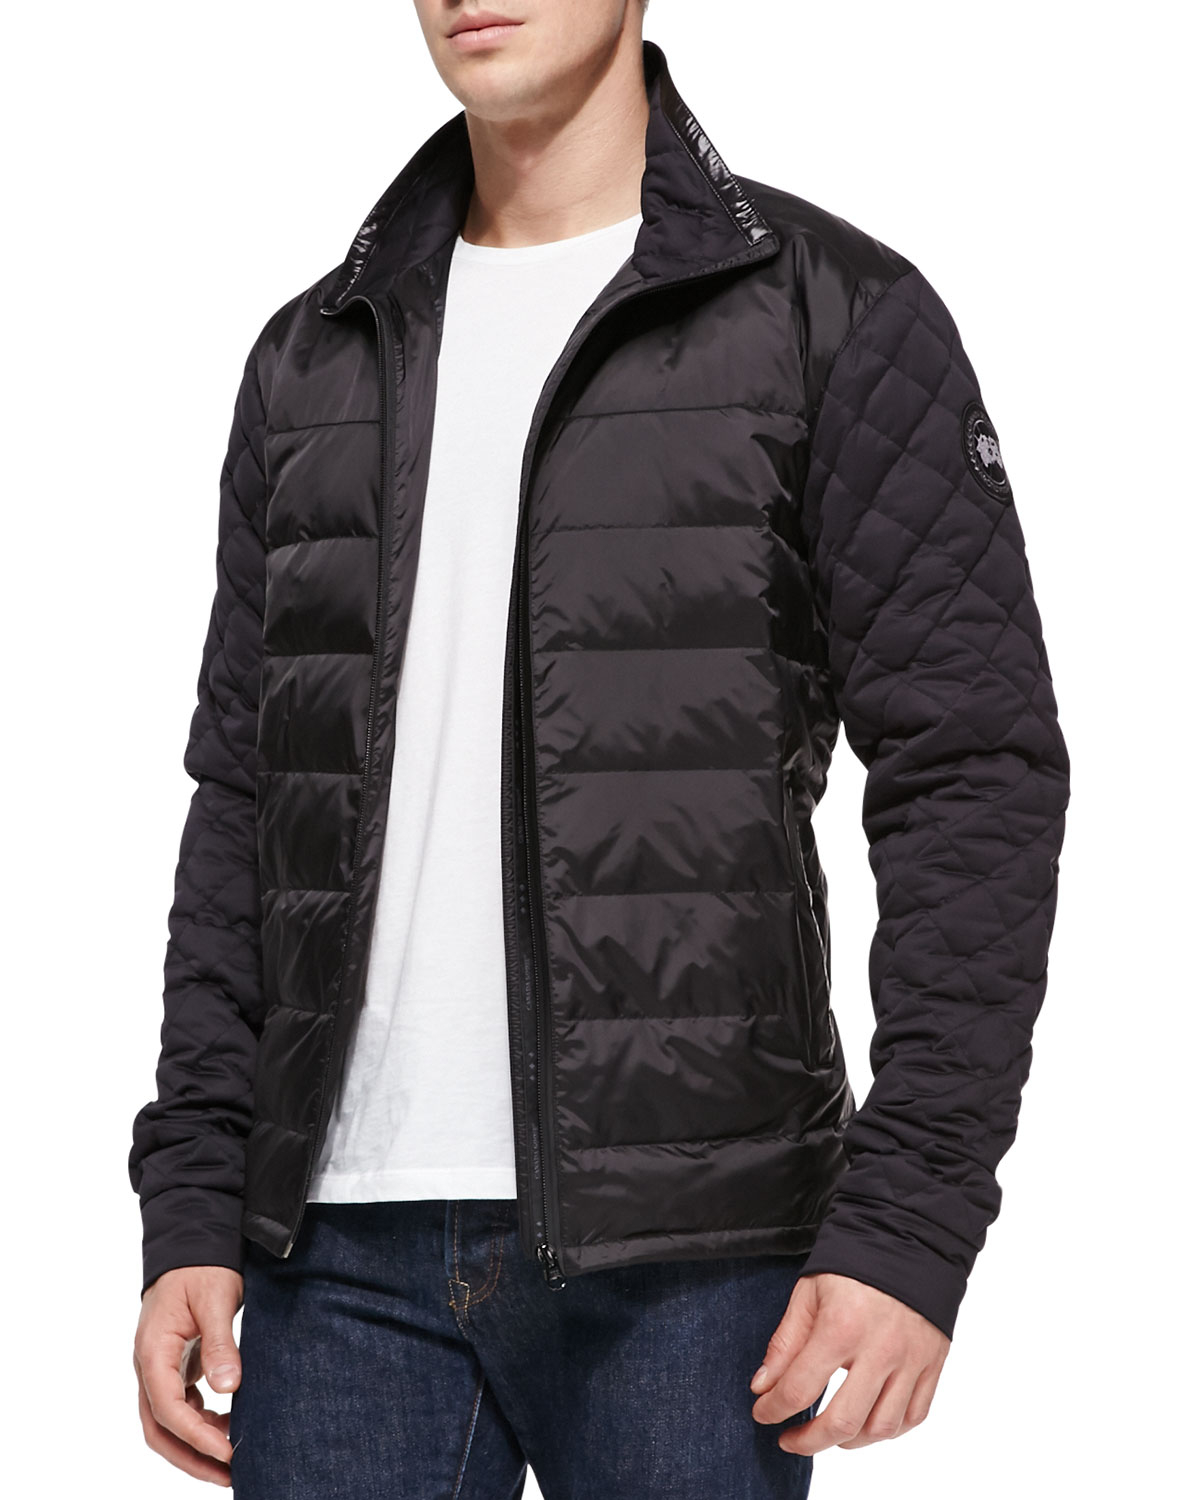 calgary jacket canada goose reviews